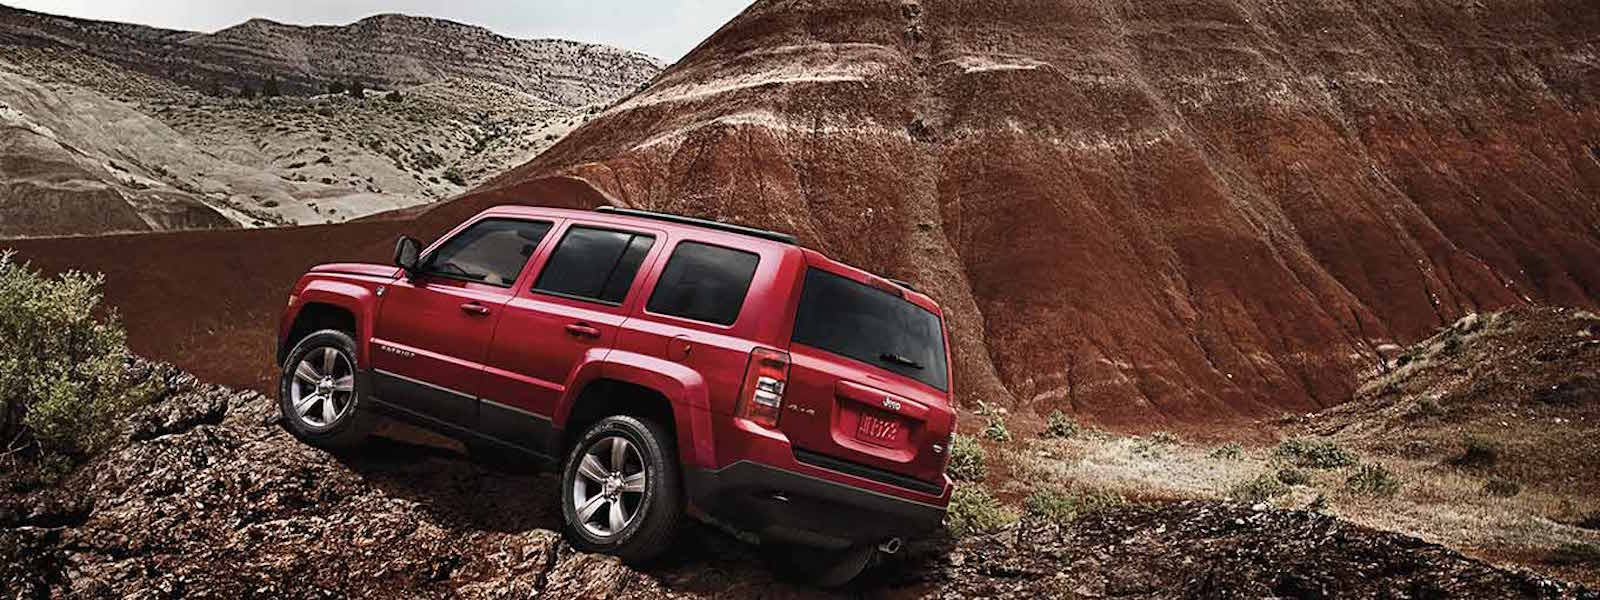 Red 2016 Jeep Patriot off roading in the desert – Colorado Springs, CO